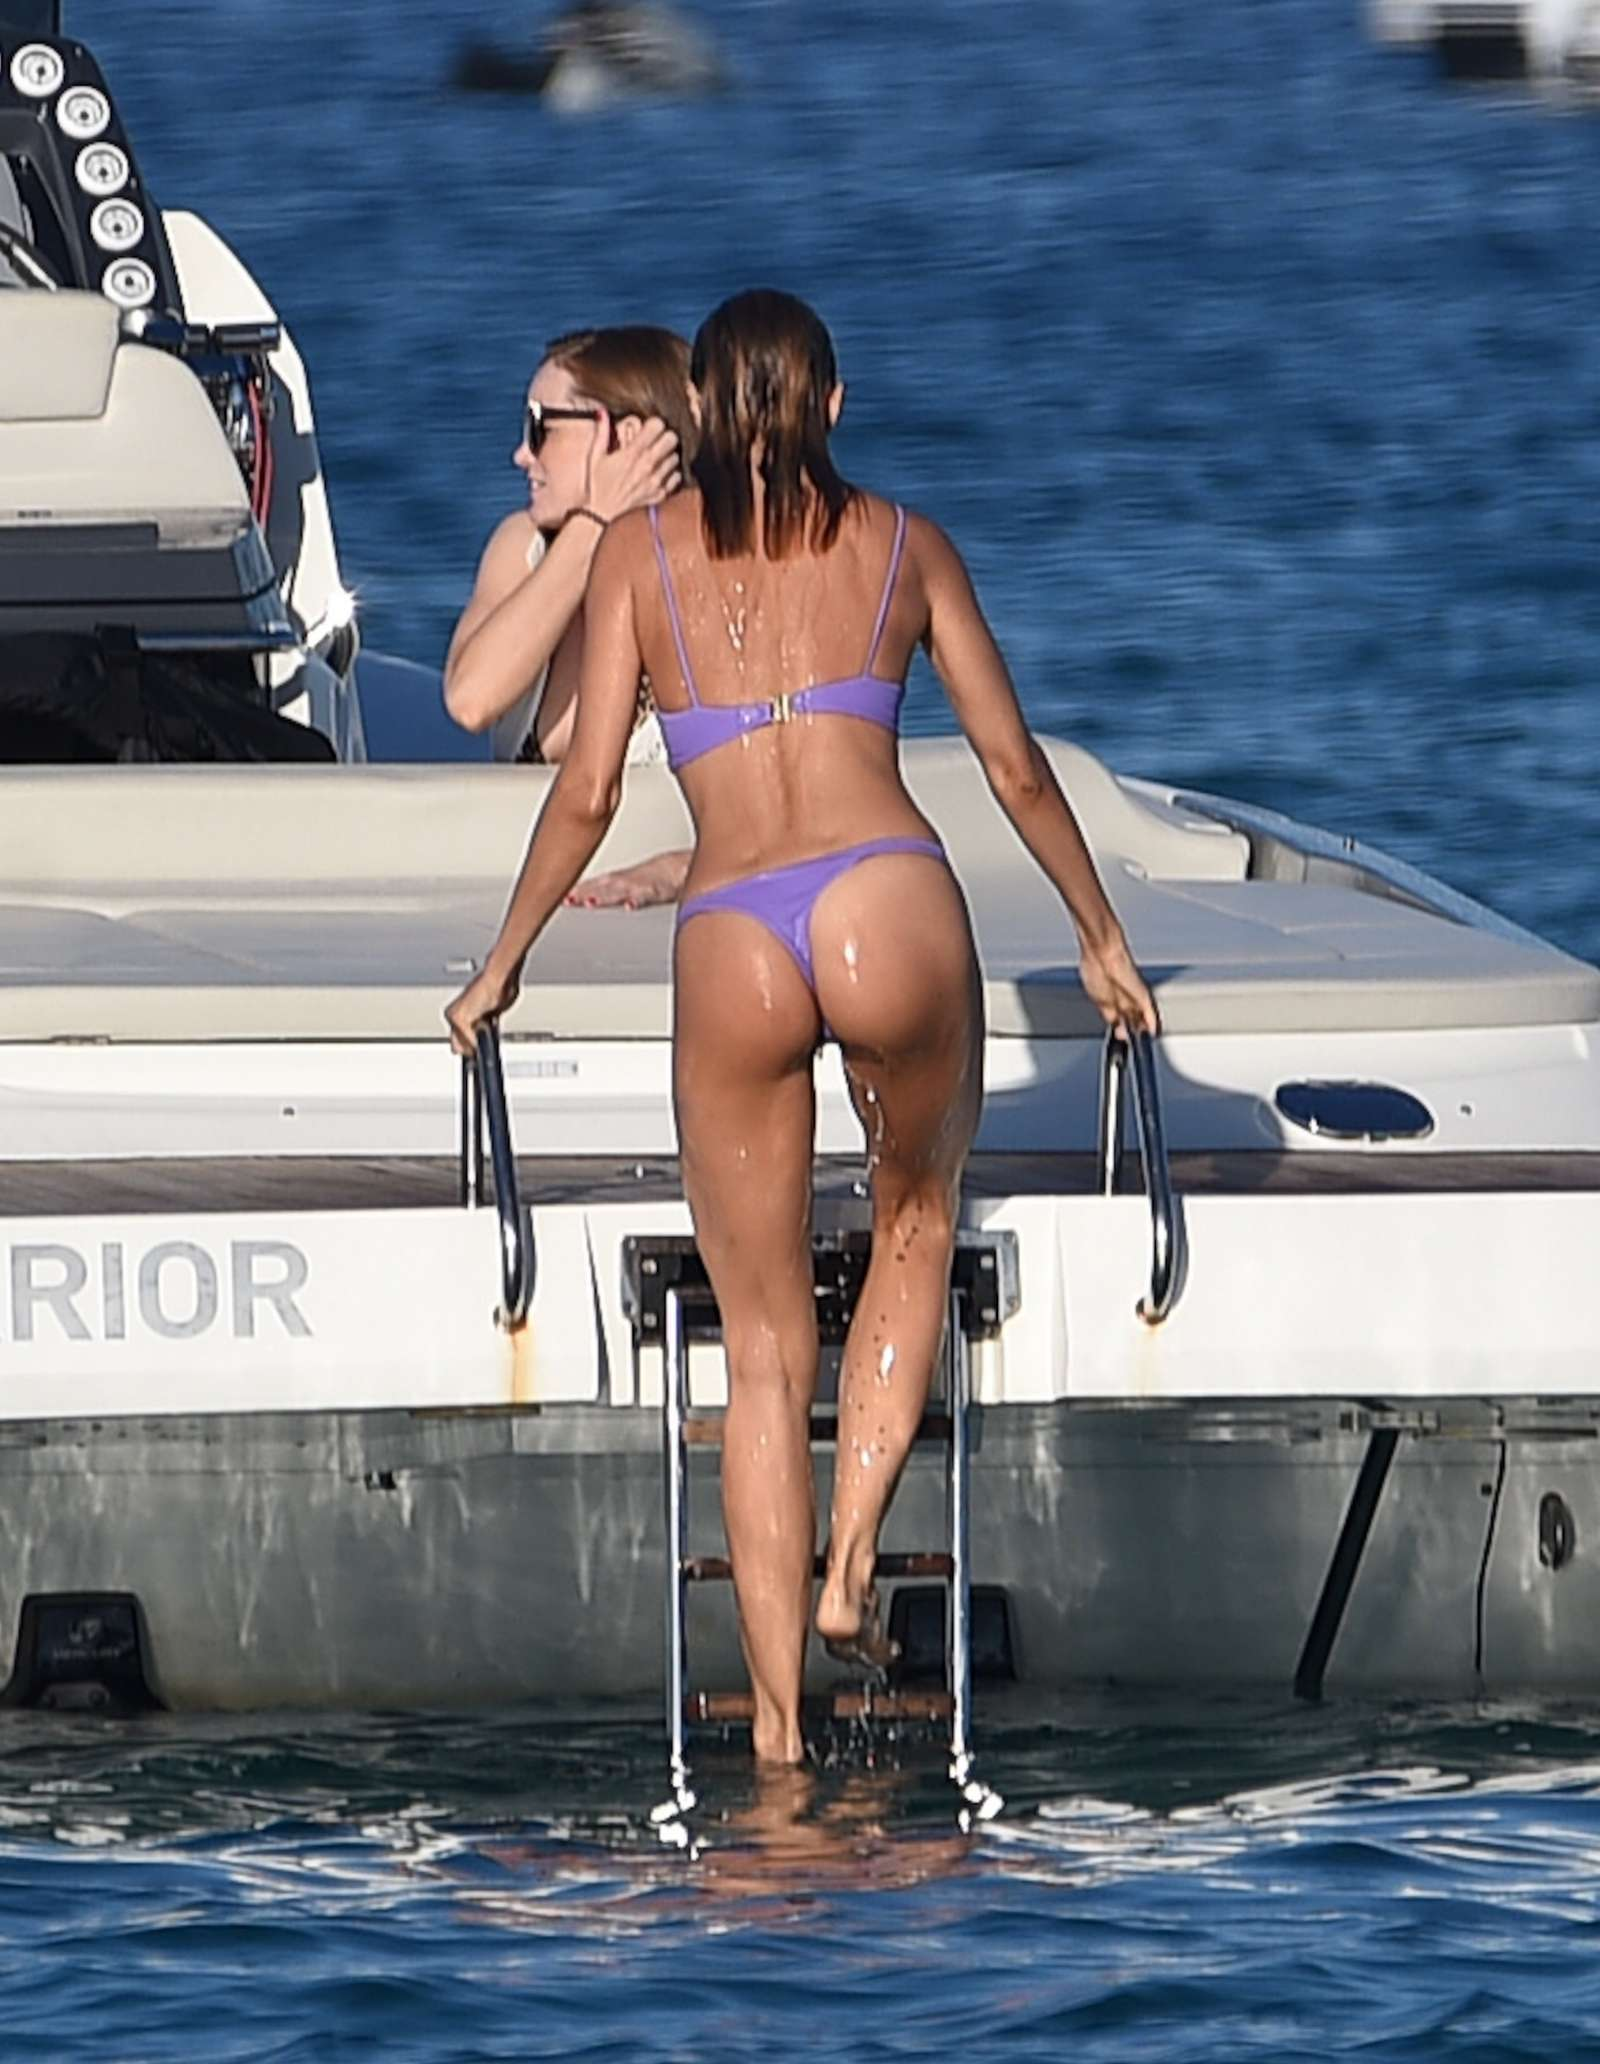 Bikini On Boats 55